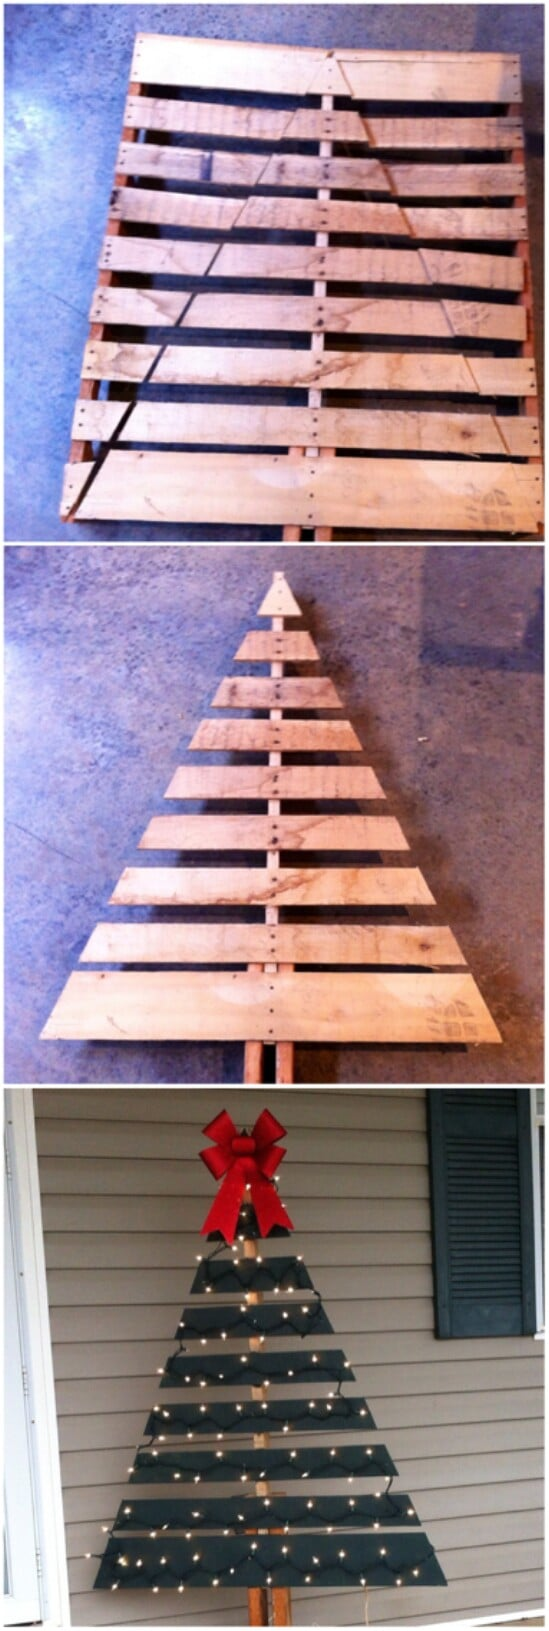 diy pallet christmas tree - Painted Wood Christmas Yard Decorations